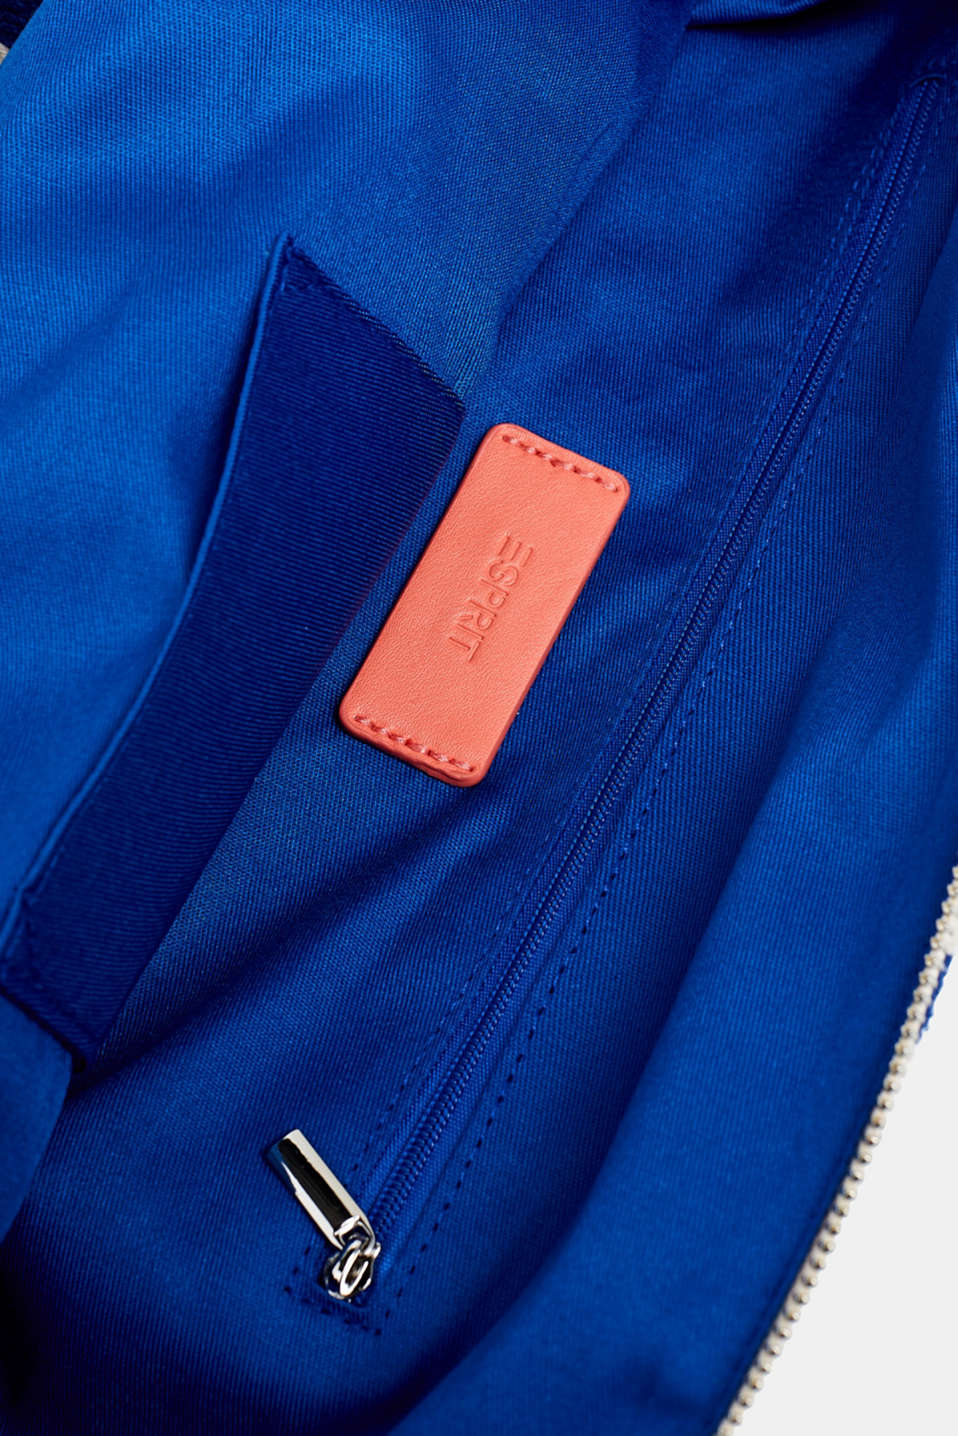 Striped cotton/canvas tote bag, BRIGHT BLUE, detail image number 4